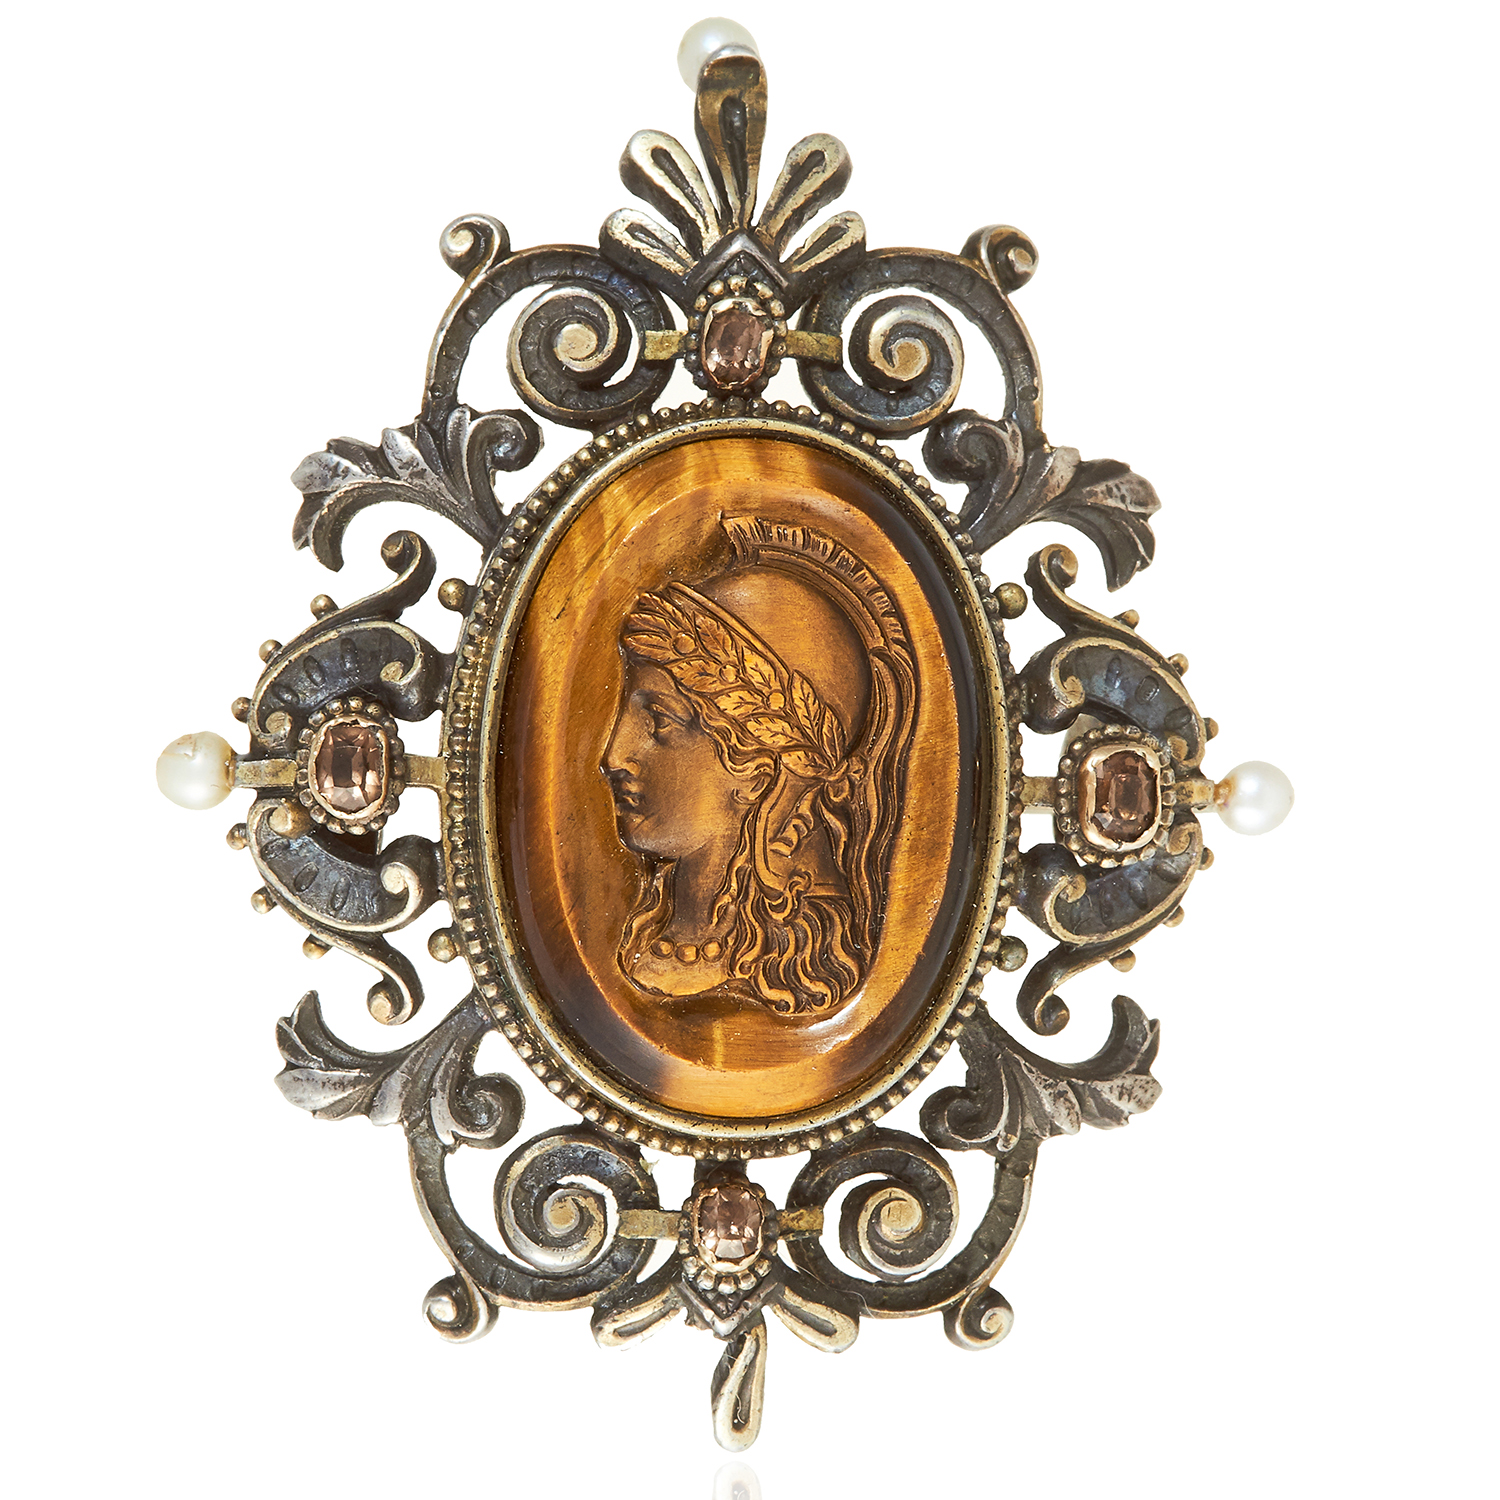 Los 339 - AN ANTIQUE JEWELLED CARVED CAMEO BROOCH, 19TH CENTURY in silver, the tiger's eye carved cameo